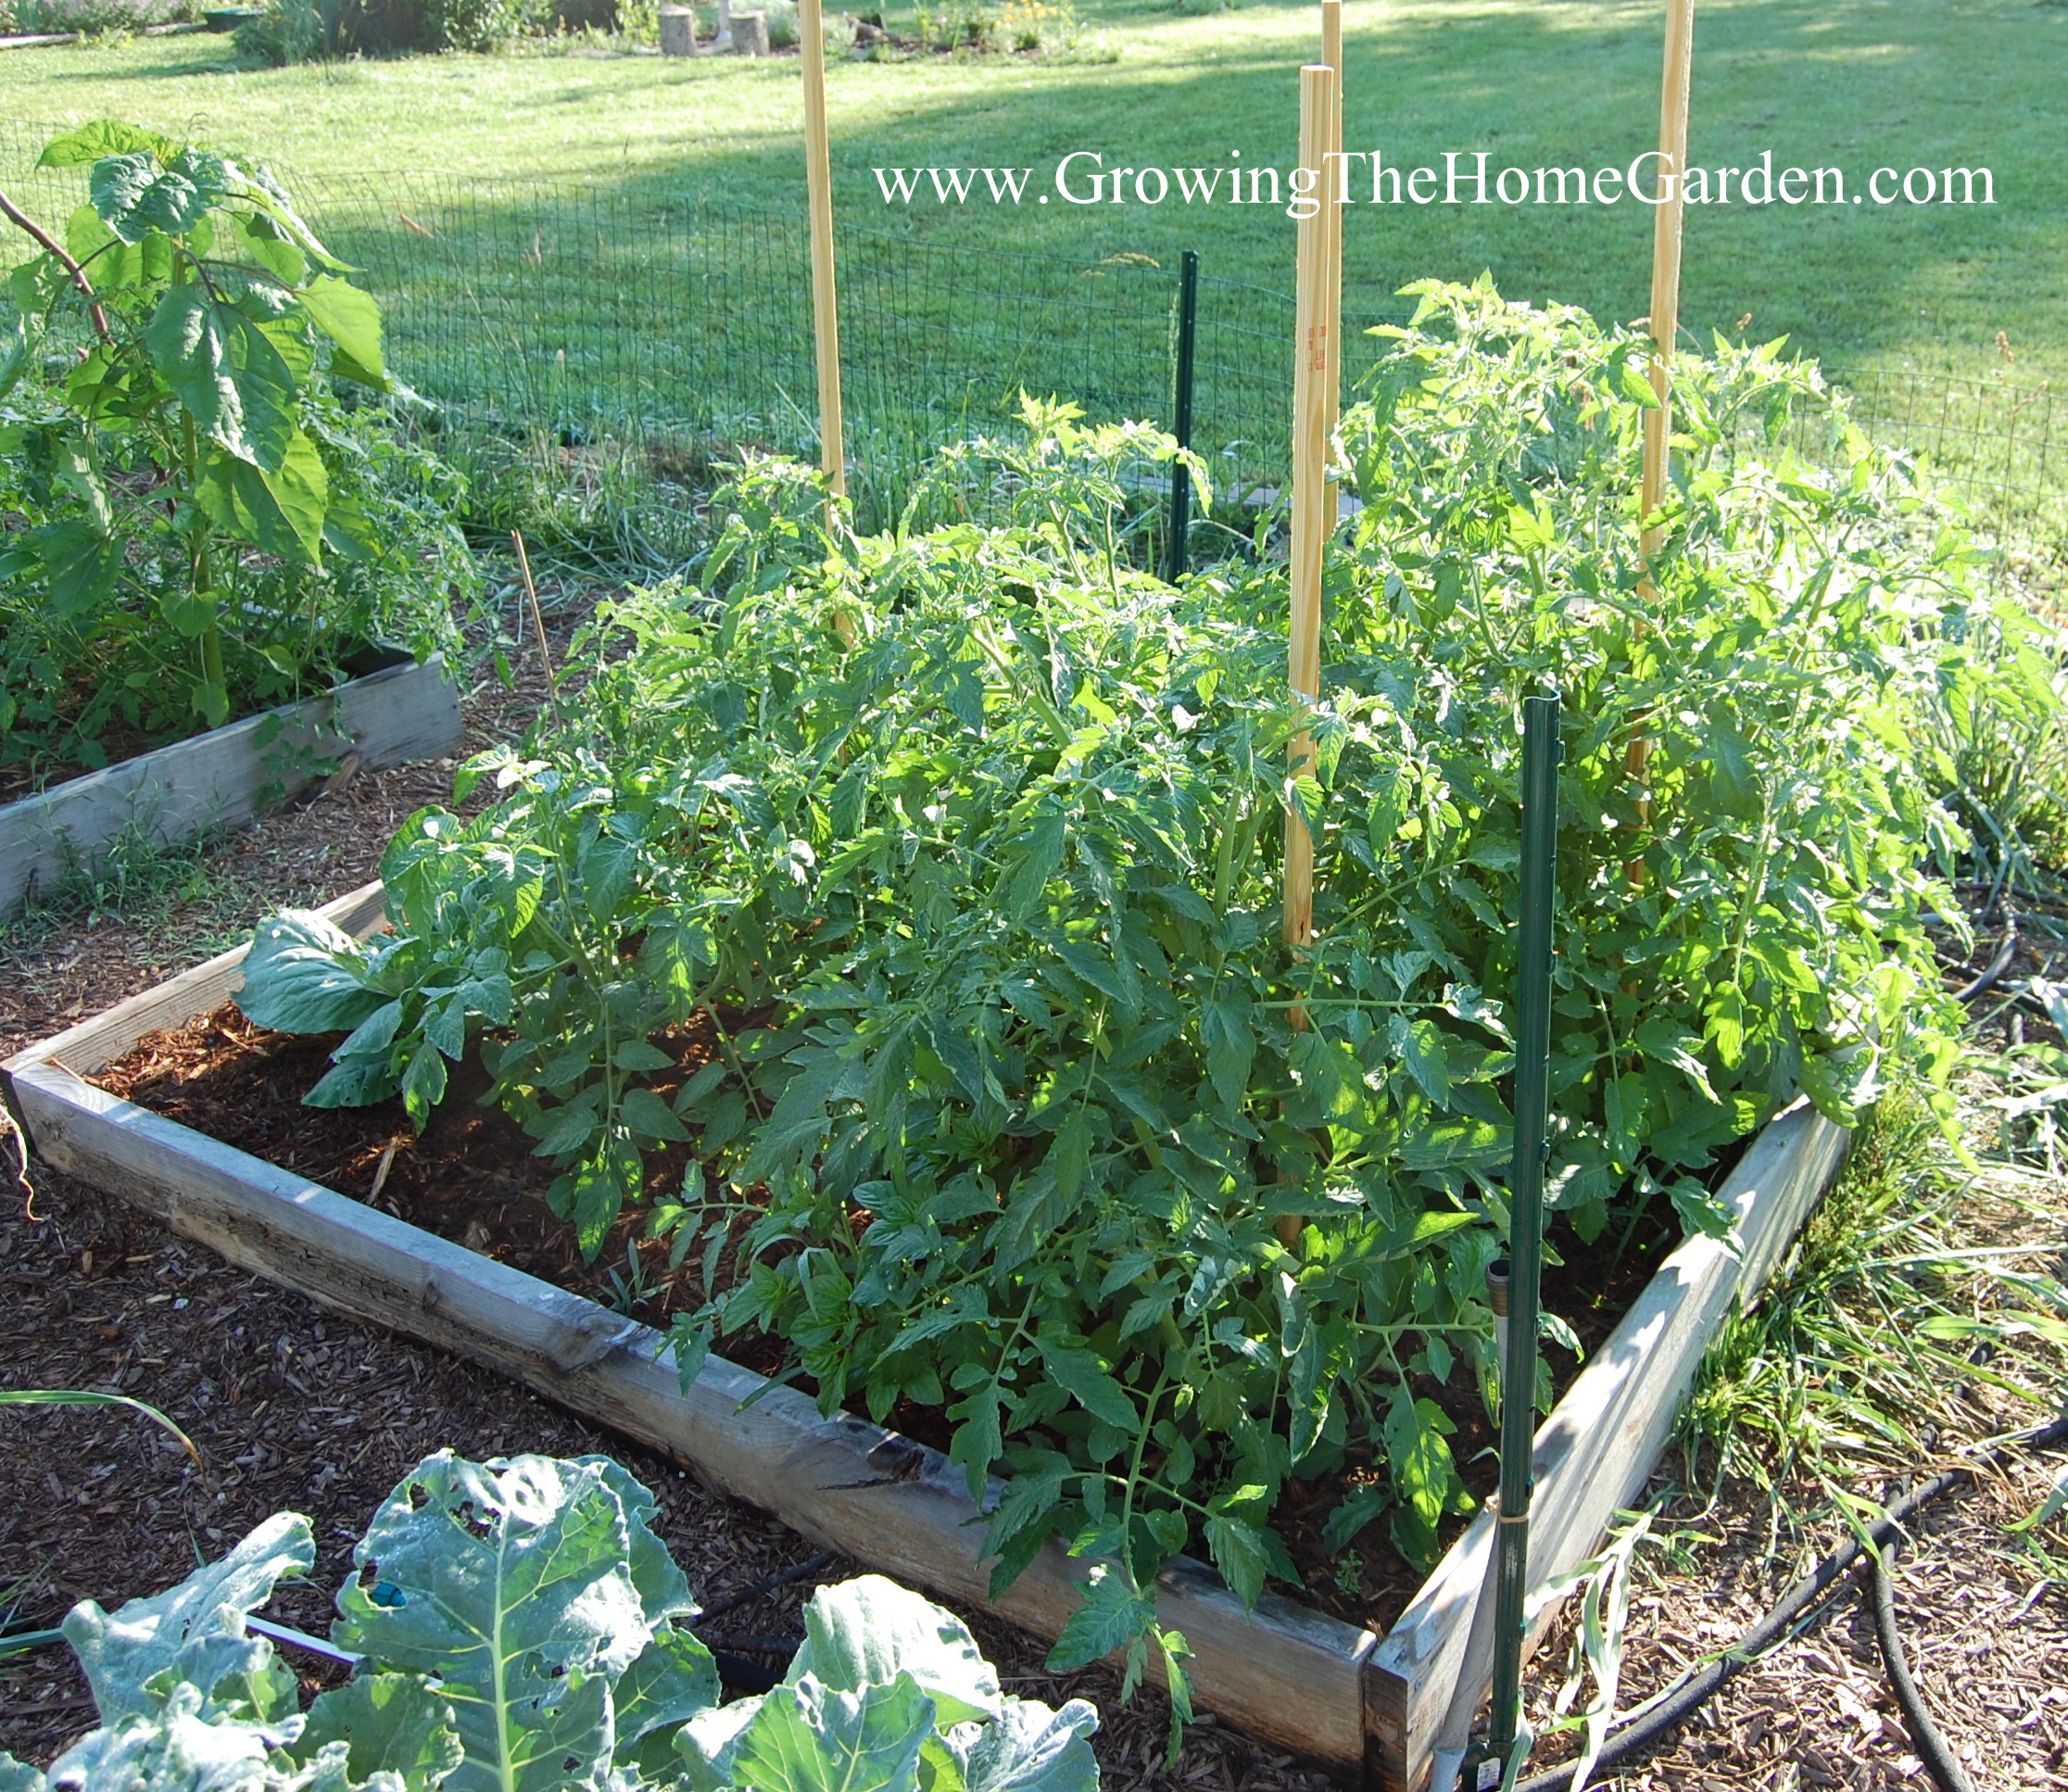 11 Tips to Consider When Designing a Raised Bed Vegetable